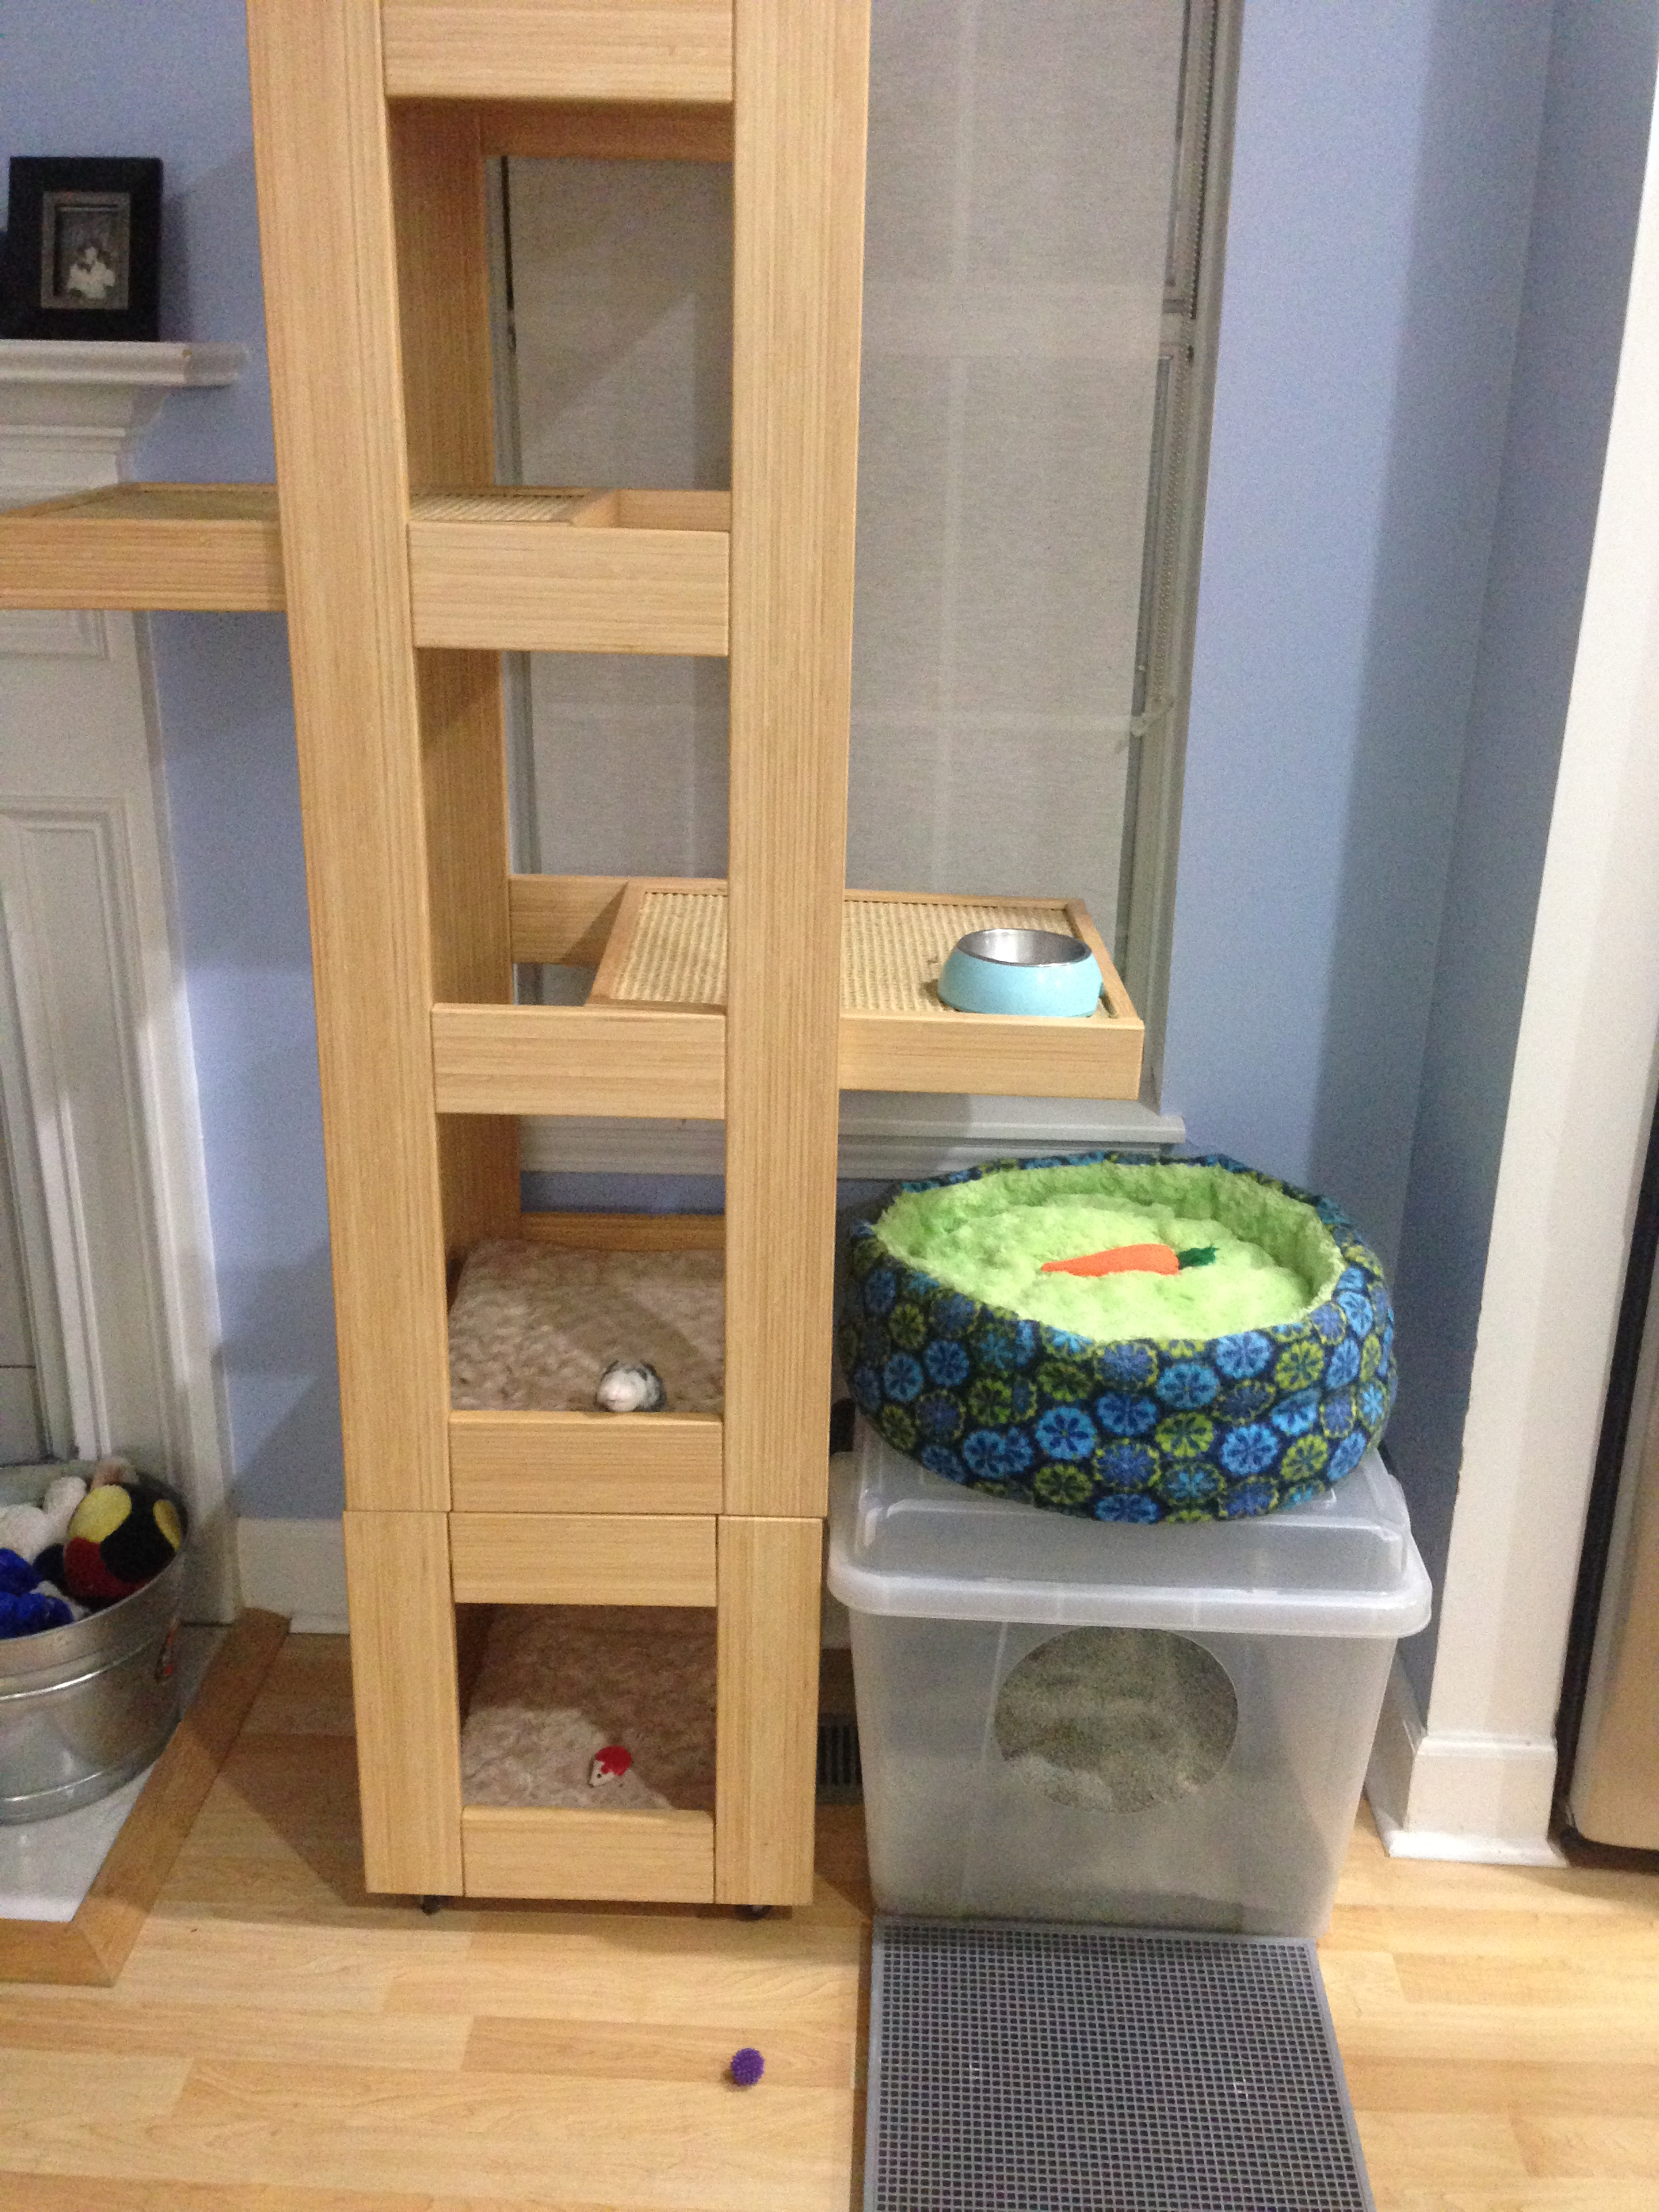 Food, litter and vertical space in 2 square feet!